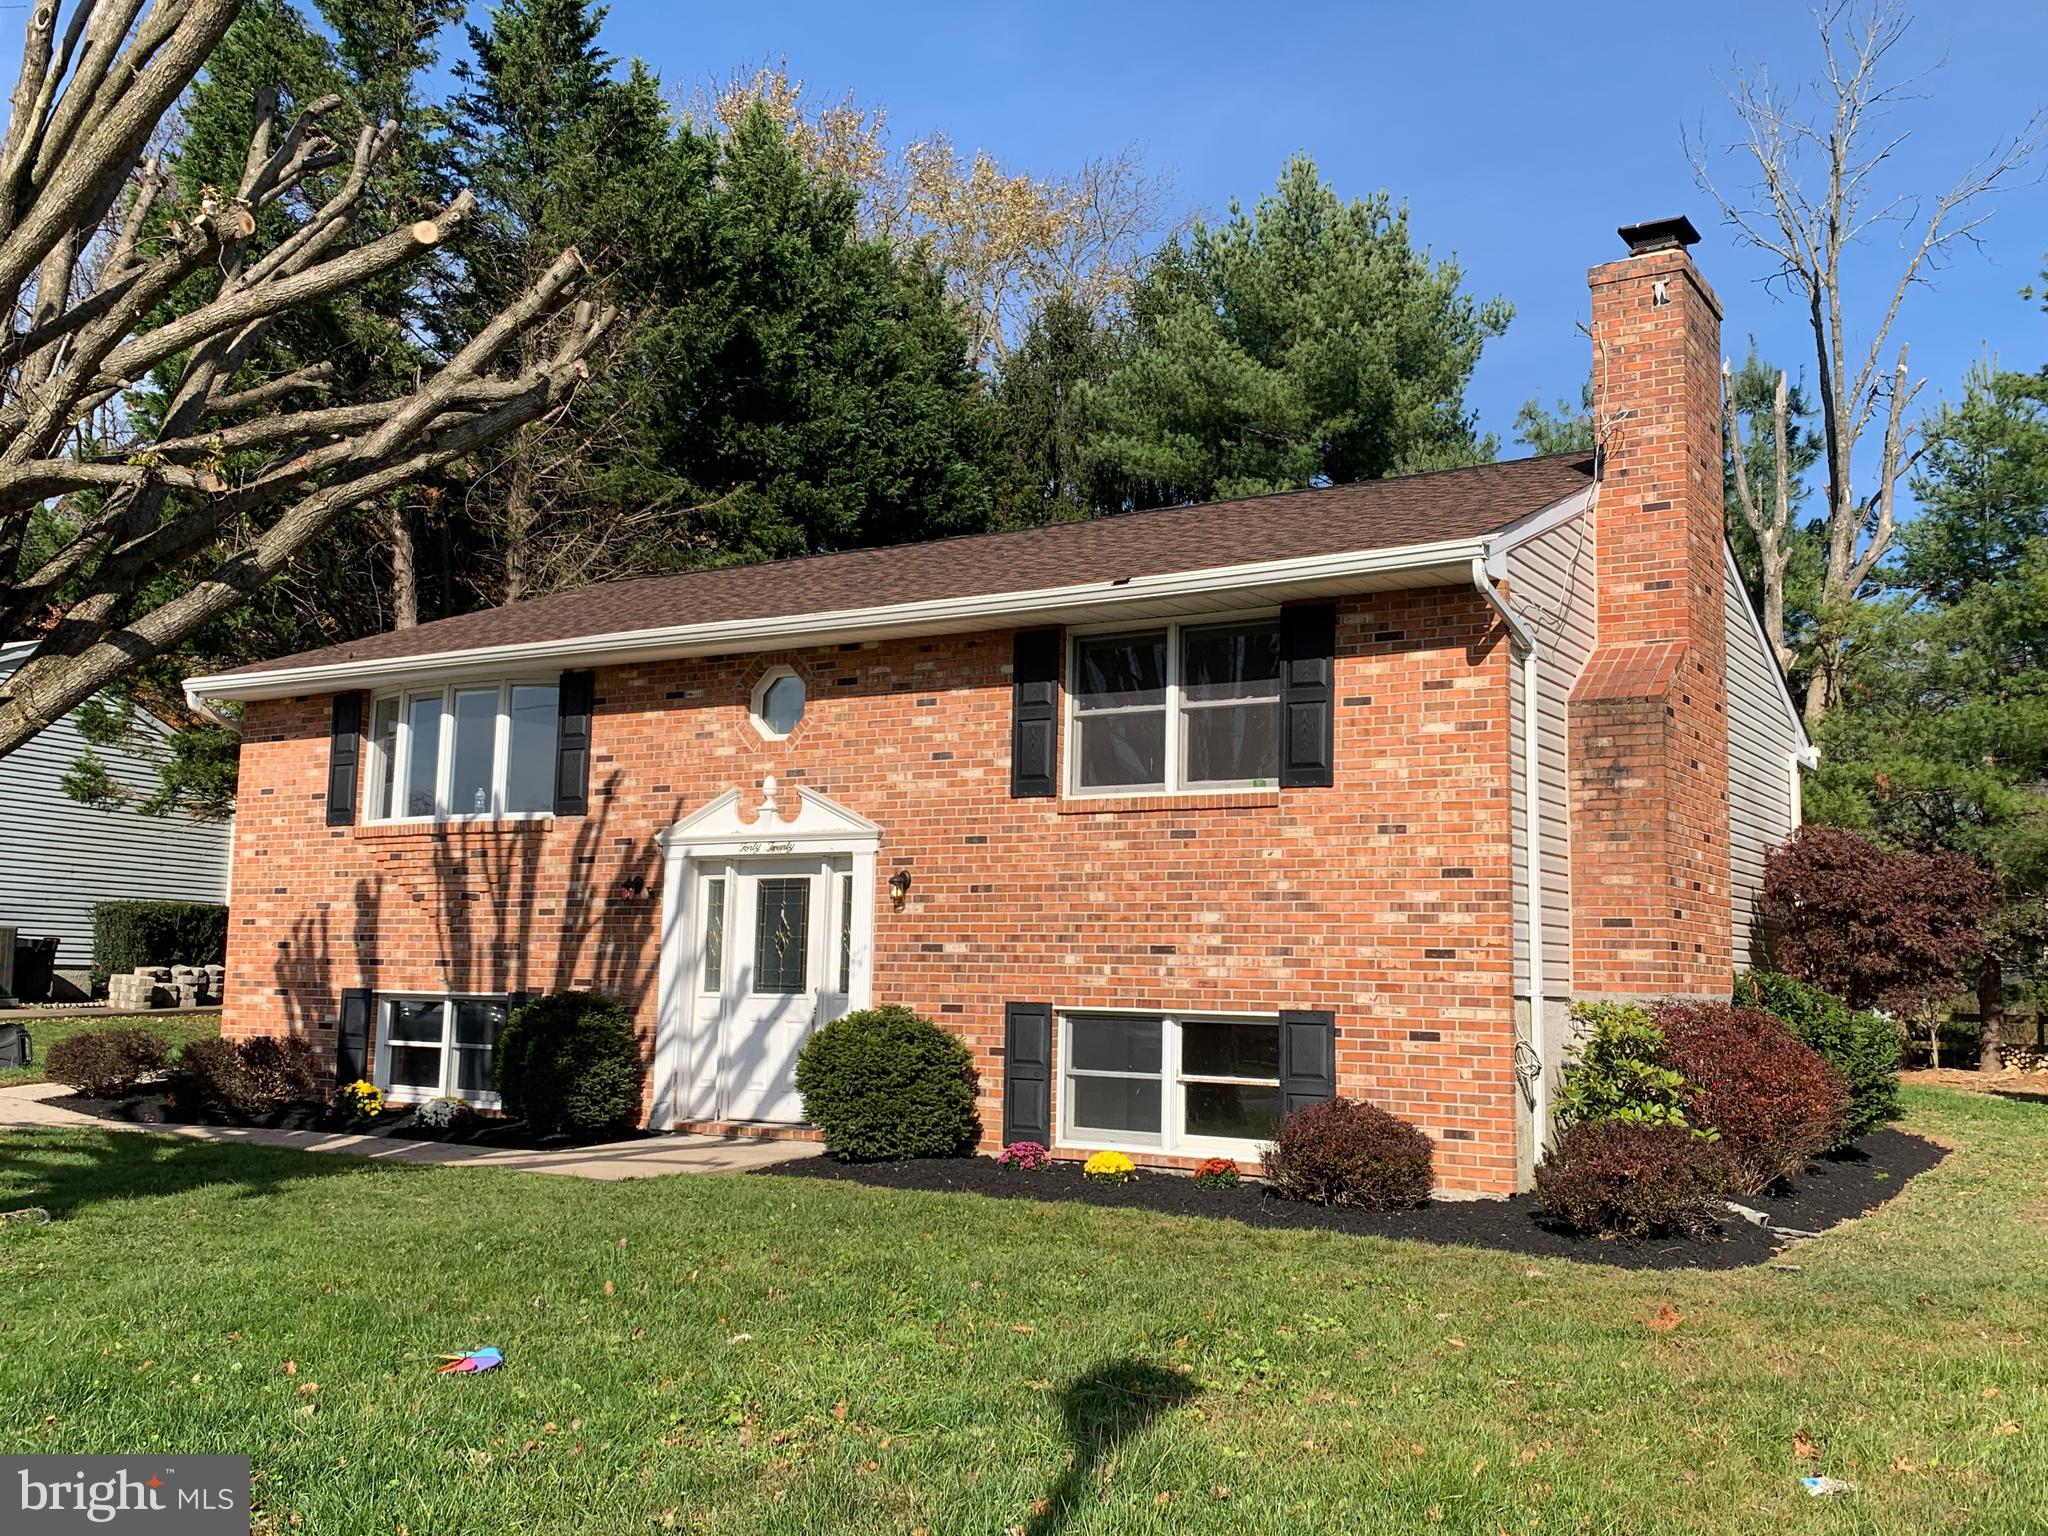 OPEN HOUSE SATURDAY, NOV 28 from 2:00-4:00